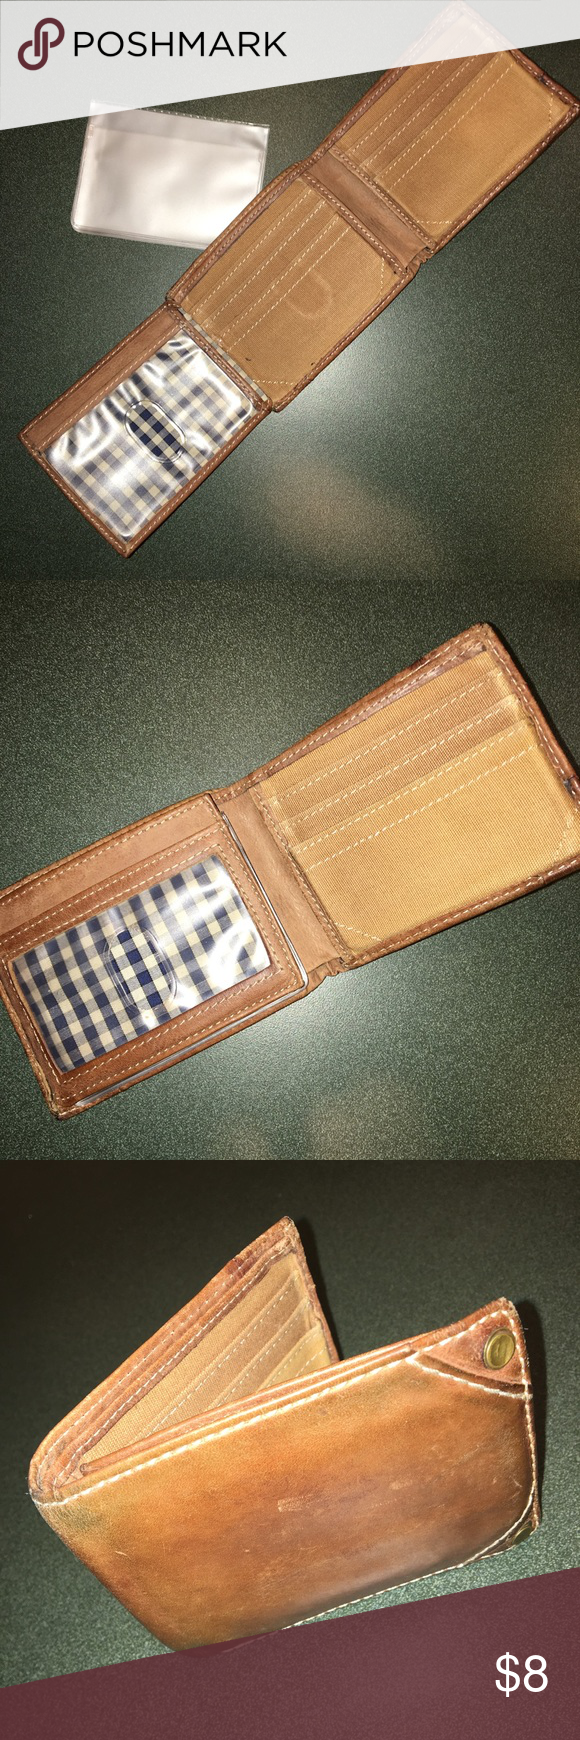 Men's TriFold Wallet light brown Tri Fold Wallet. Plaid flannel and Light brown! Check out pics. Pet & Smoke Free Home Always! Thanks for looking, liking, and sharing. Offers welcome! Steve Madden Accessories